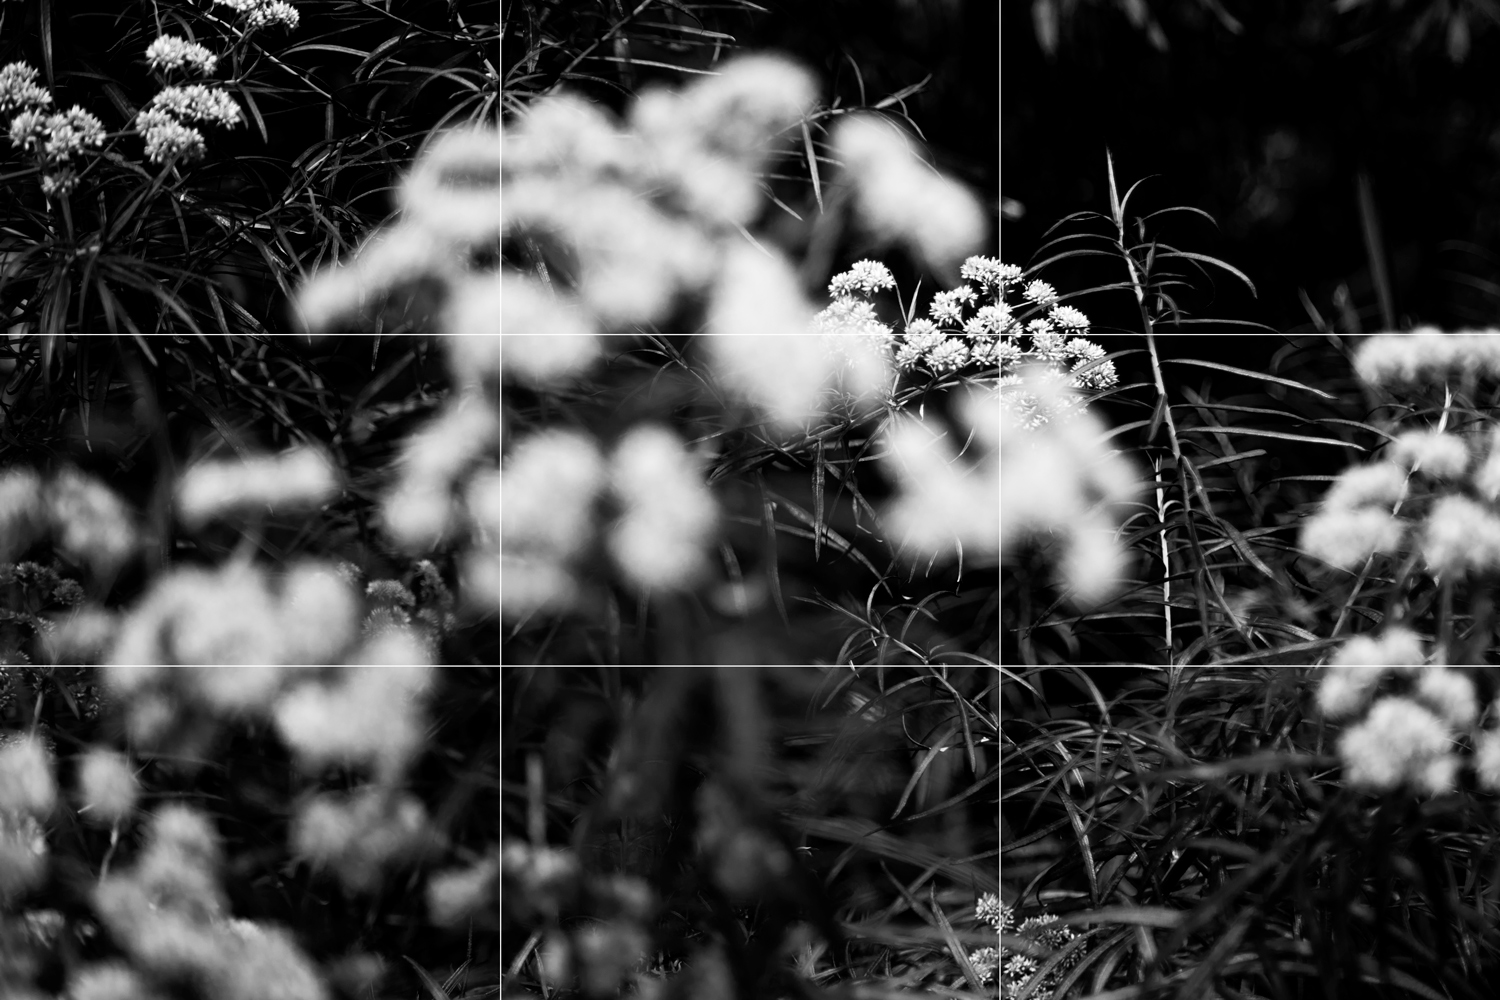 Rule of thirds example - flowers in black and white